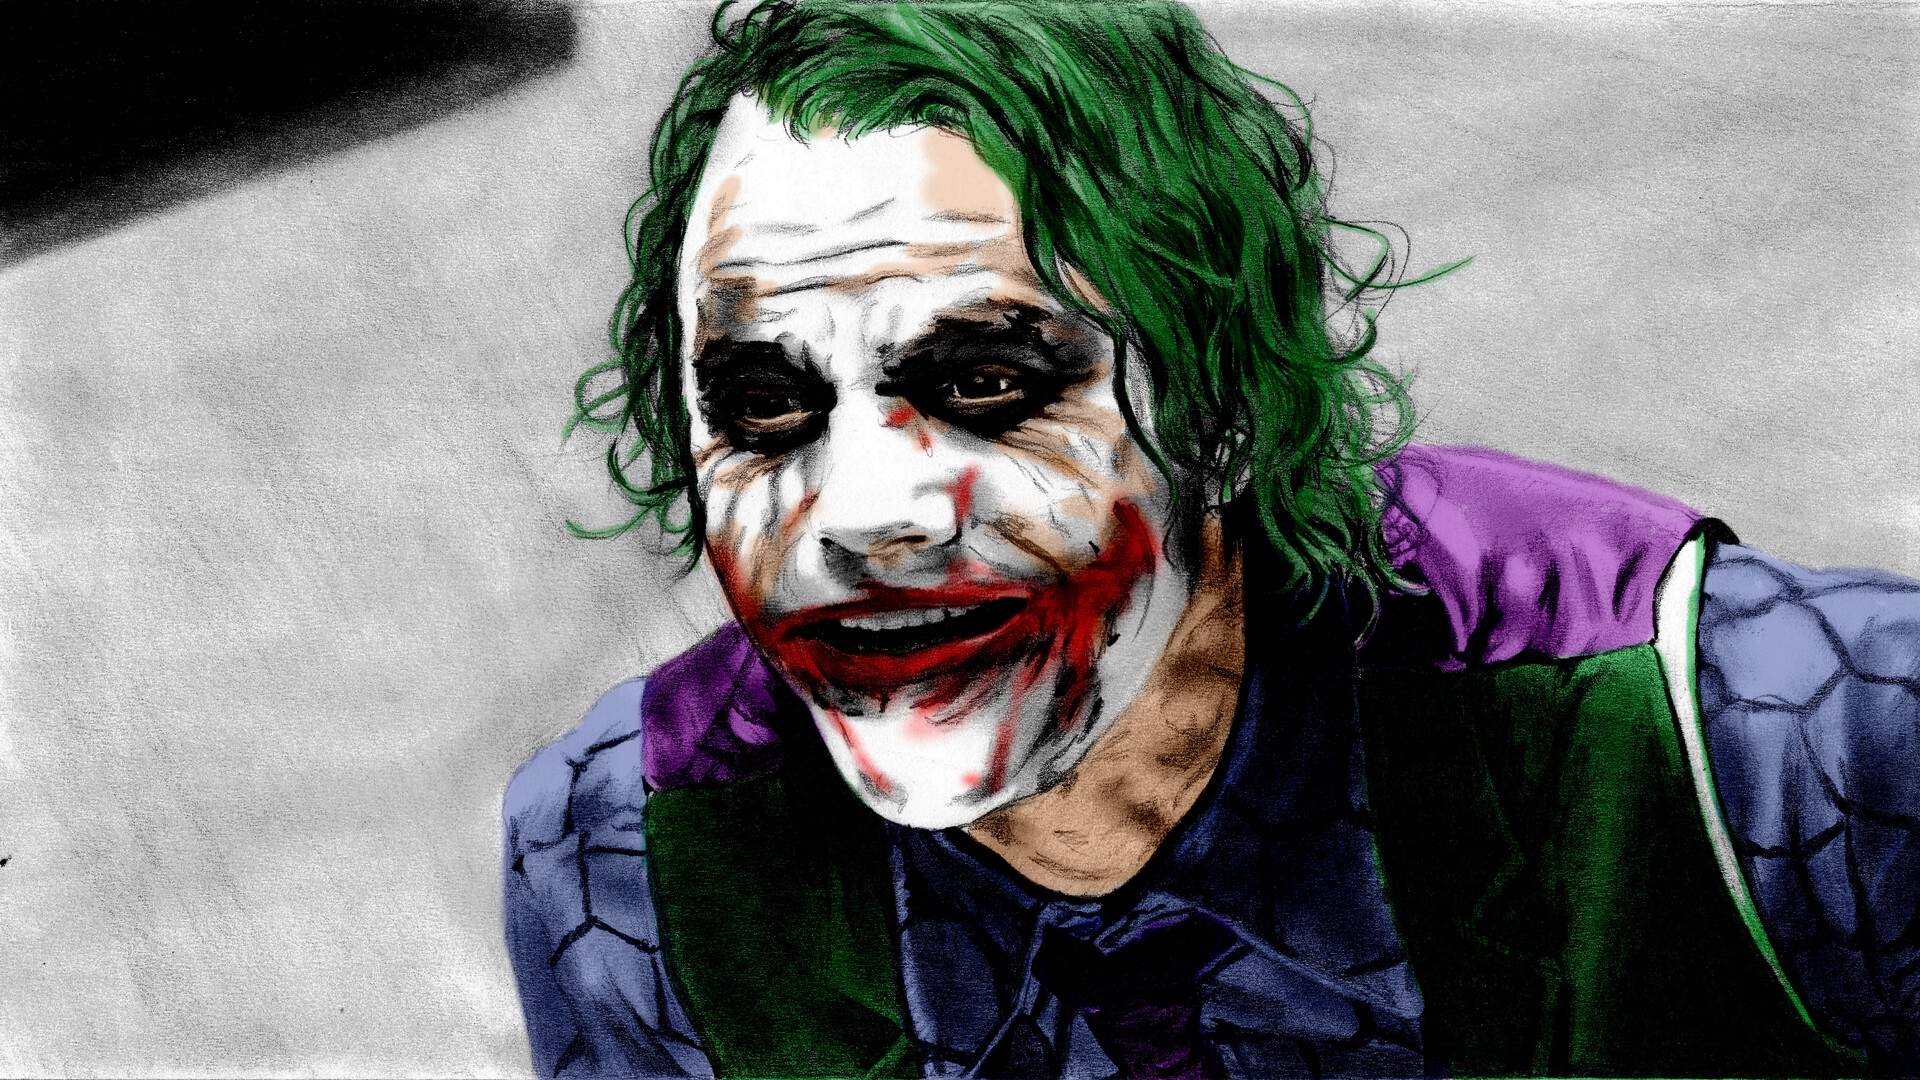 1920x1080 Joker The Dark Knight Laptop Full Hd 1080p Hd 4k Wallpapers Images Backgrounds Photos And Pictures